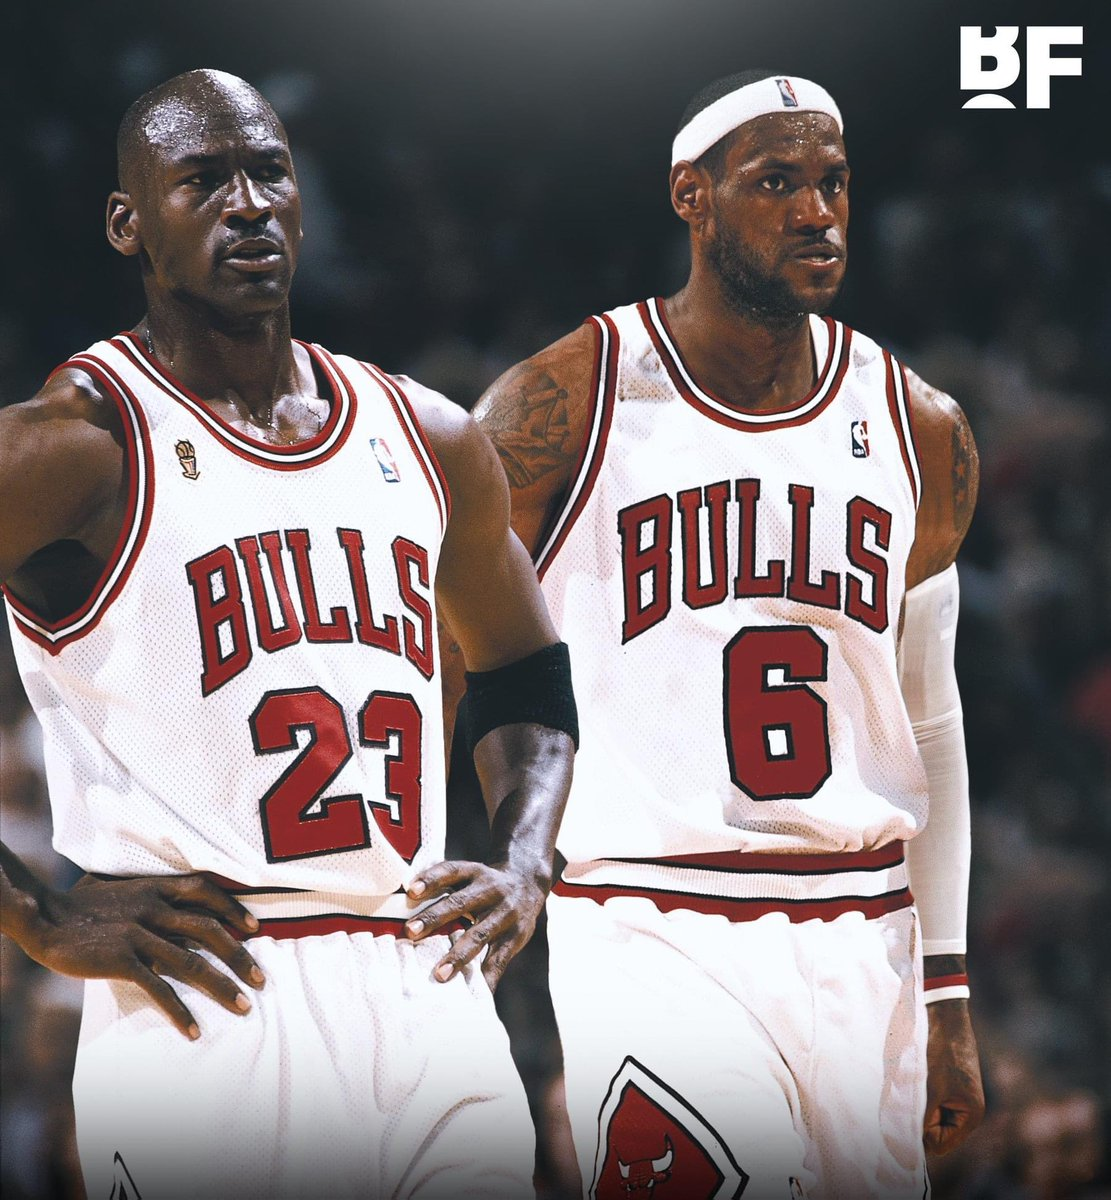 """I feel like my best assets work perfectly with Mike...I saw the things Scottie was able to do with Mike, I just think it would've been a whole 'nother level.""  - LeBron on being teammates with MJ  (via @uninterrupted) https://t.co/b0G8aW9BHq"